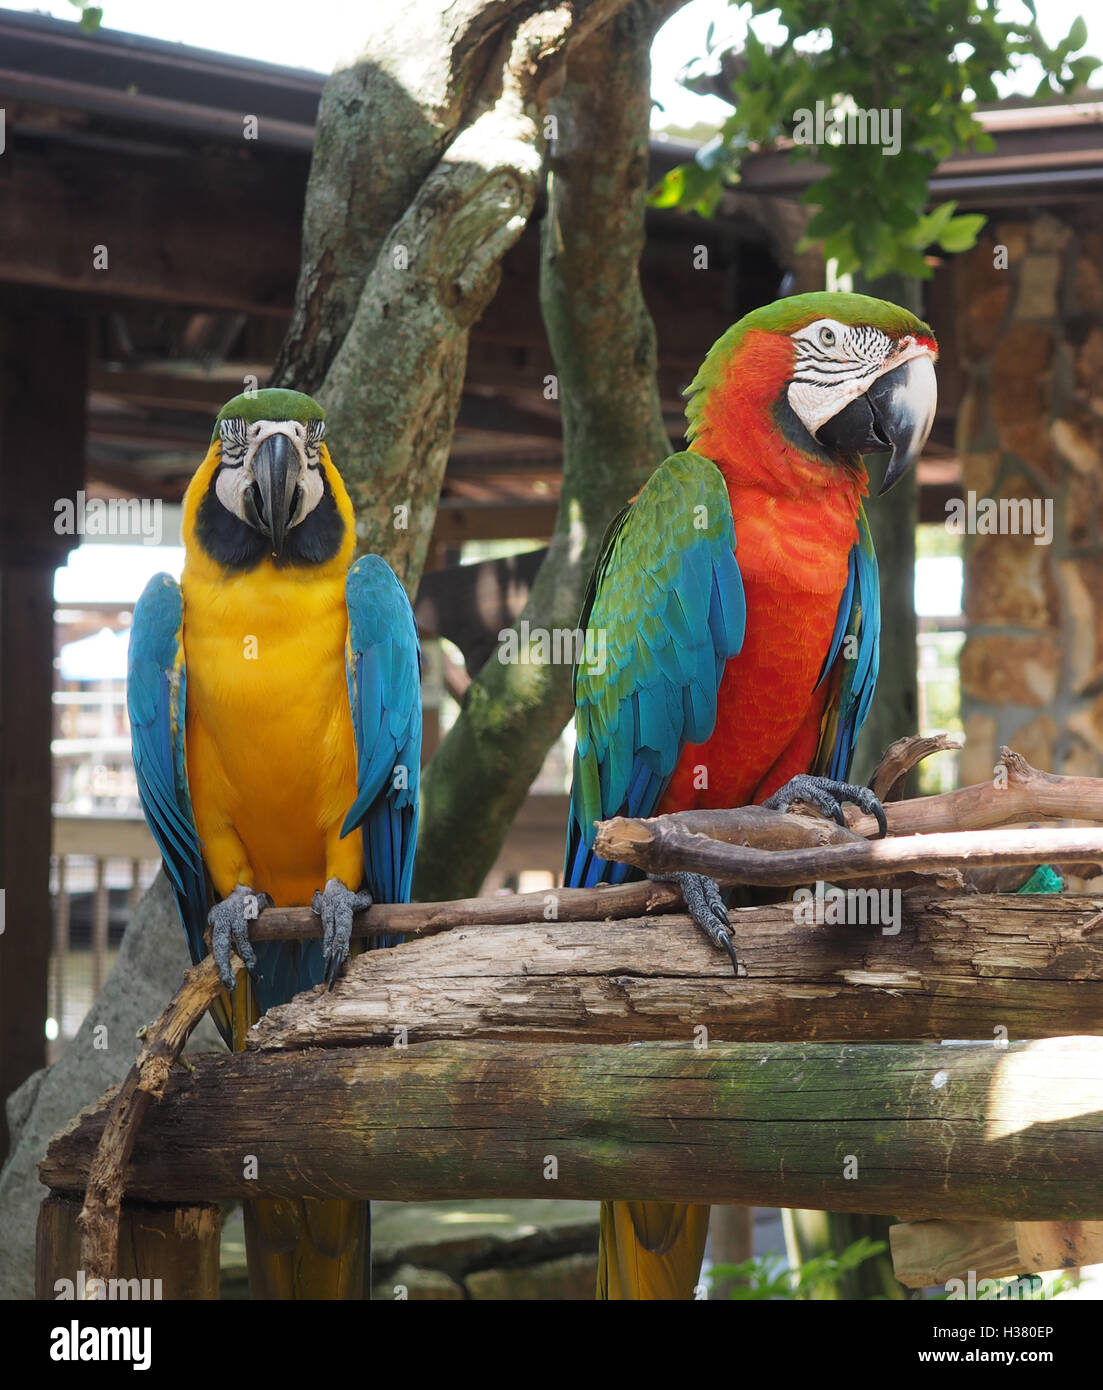 two bright colored macaw parrots perched on a tree limb - Stock Image